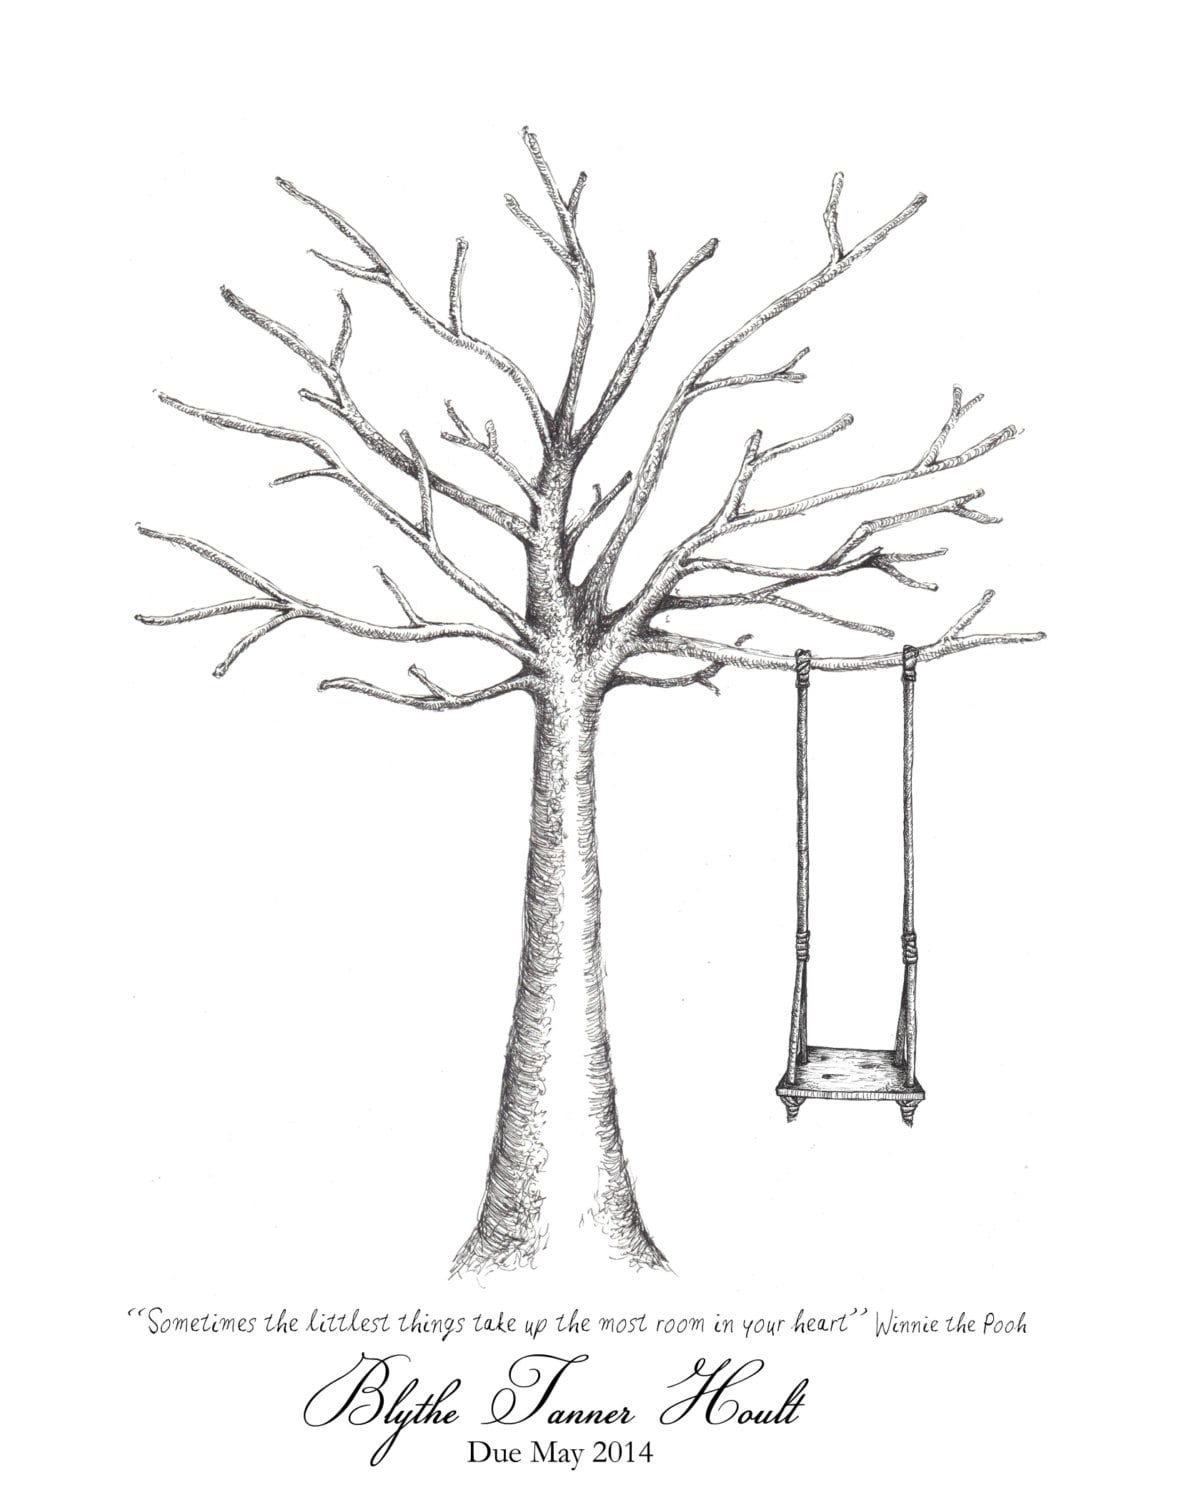 Impeccable image intended for fingerprint tree printable